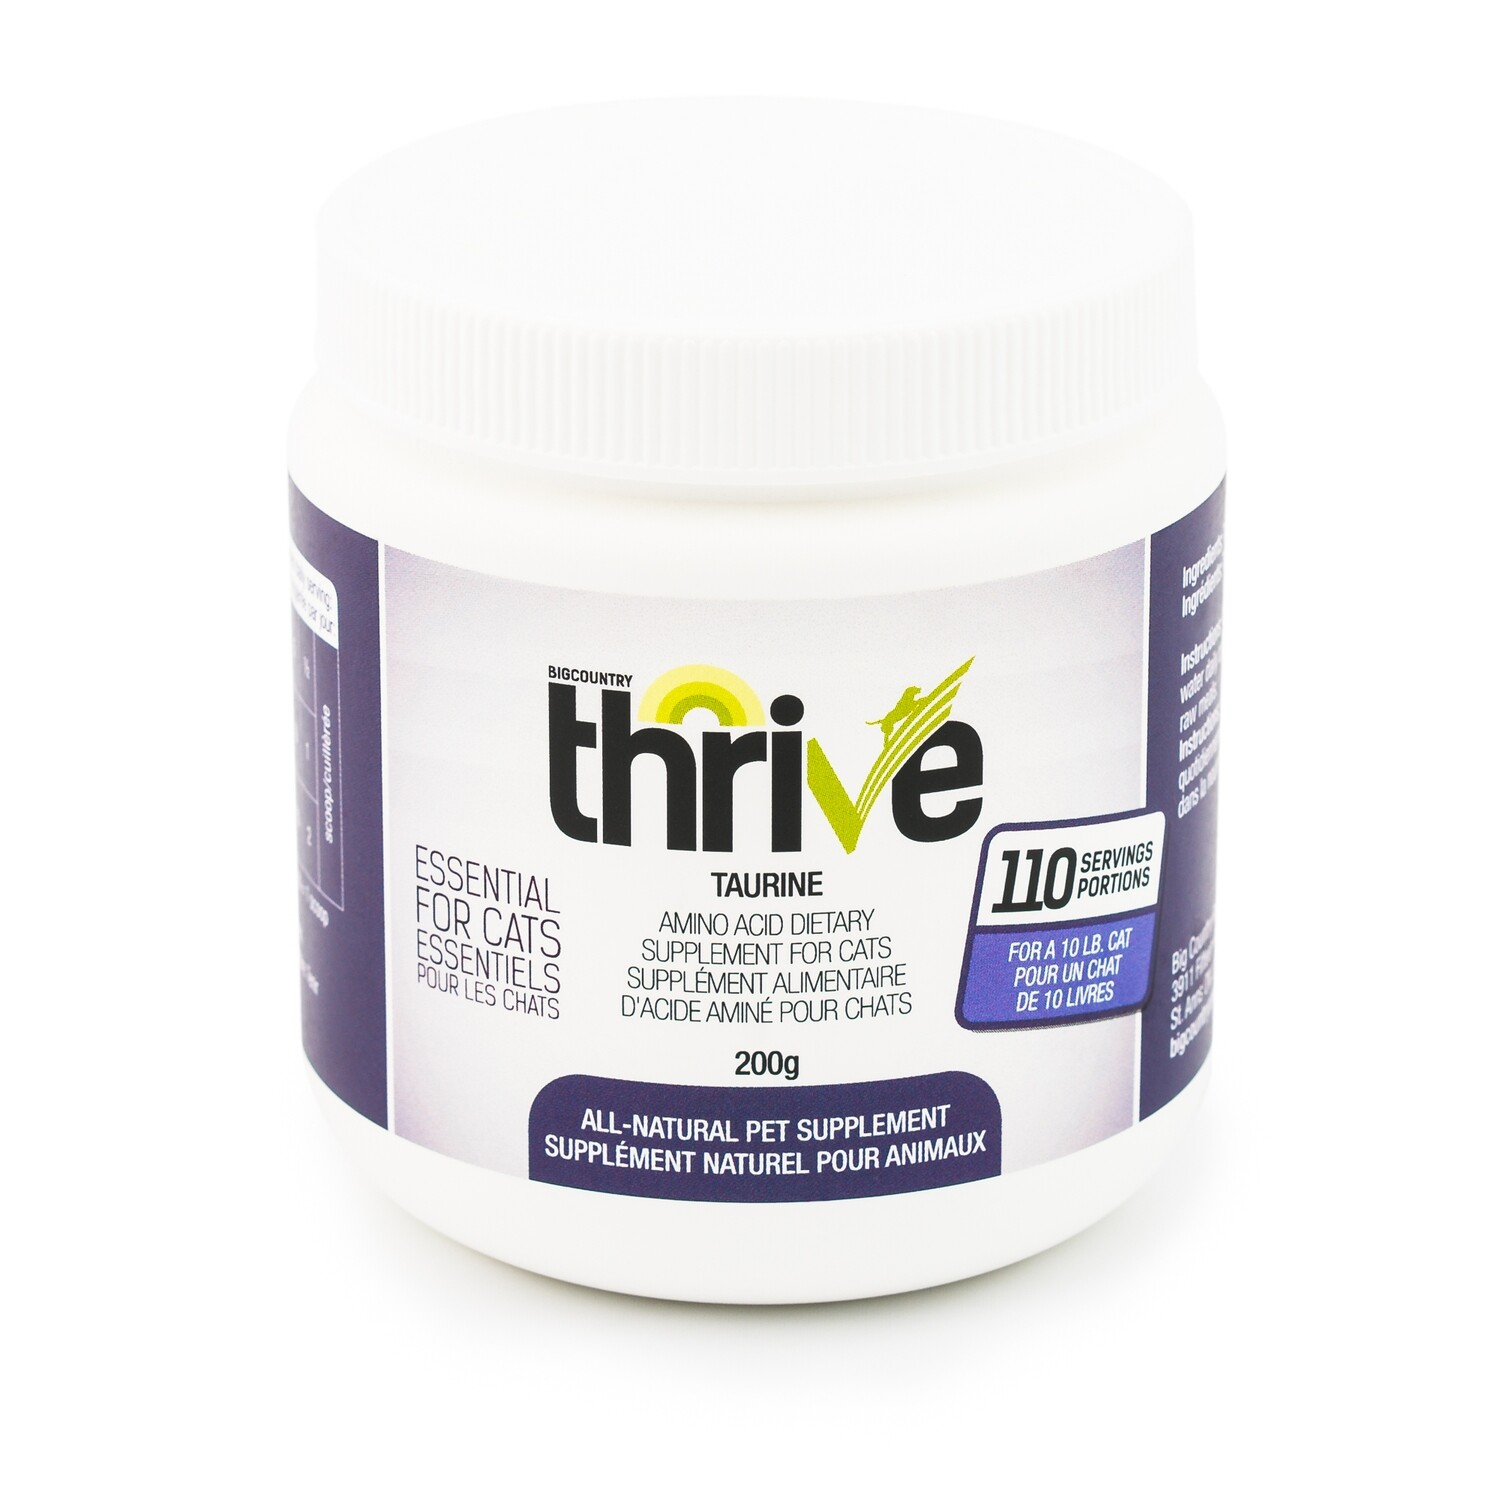 THRIVE: TAURINE